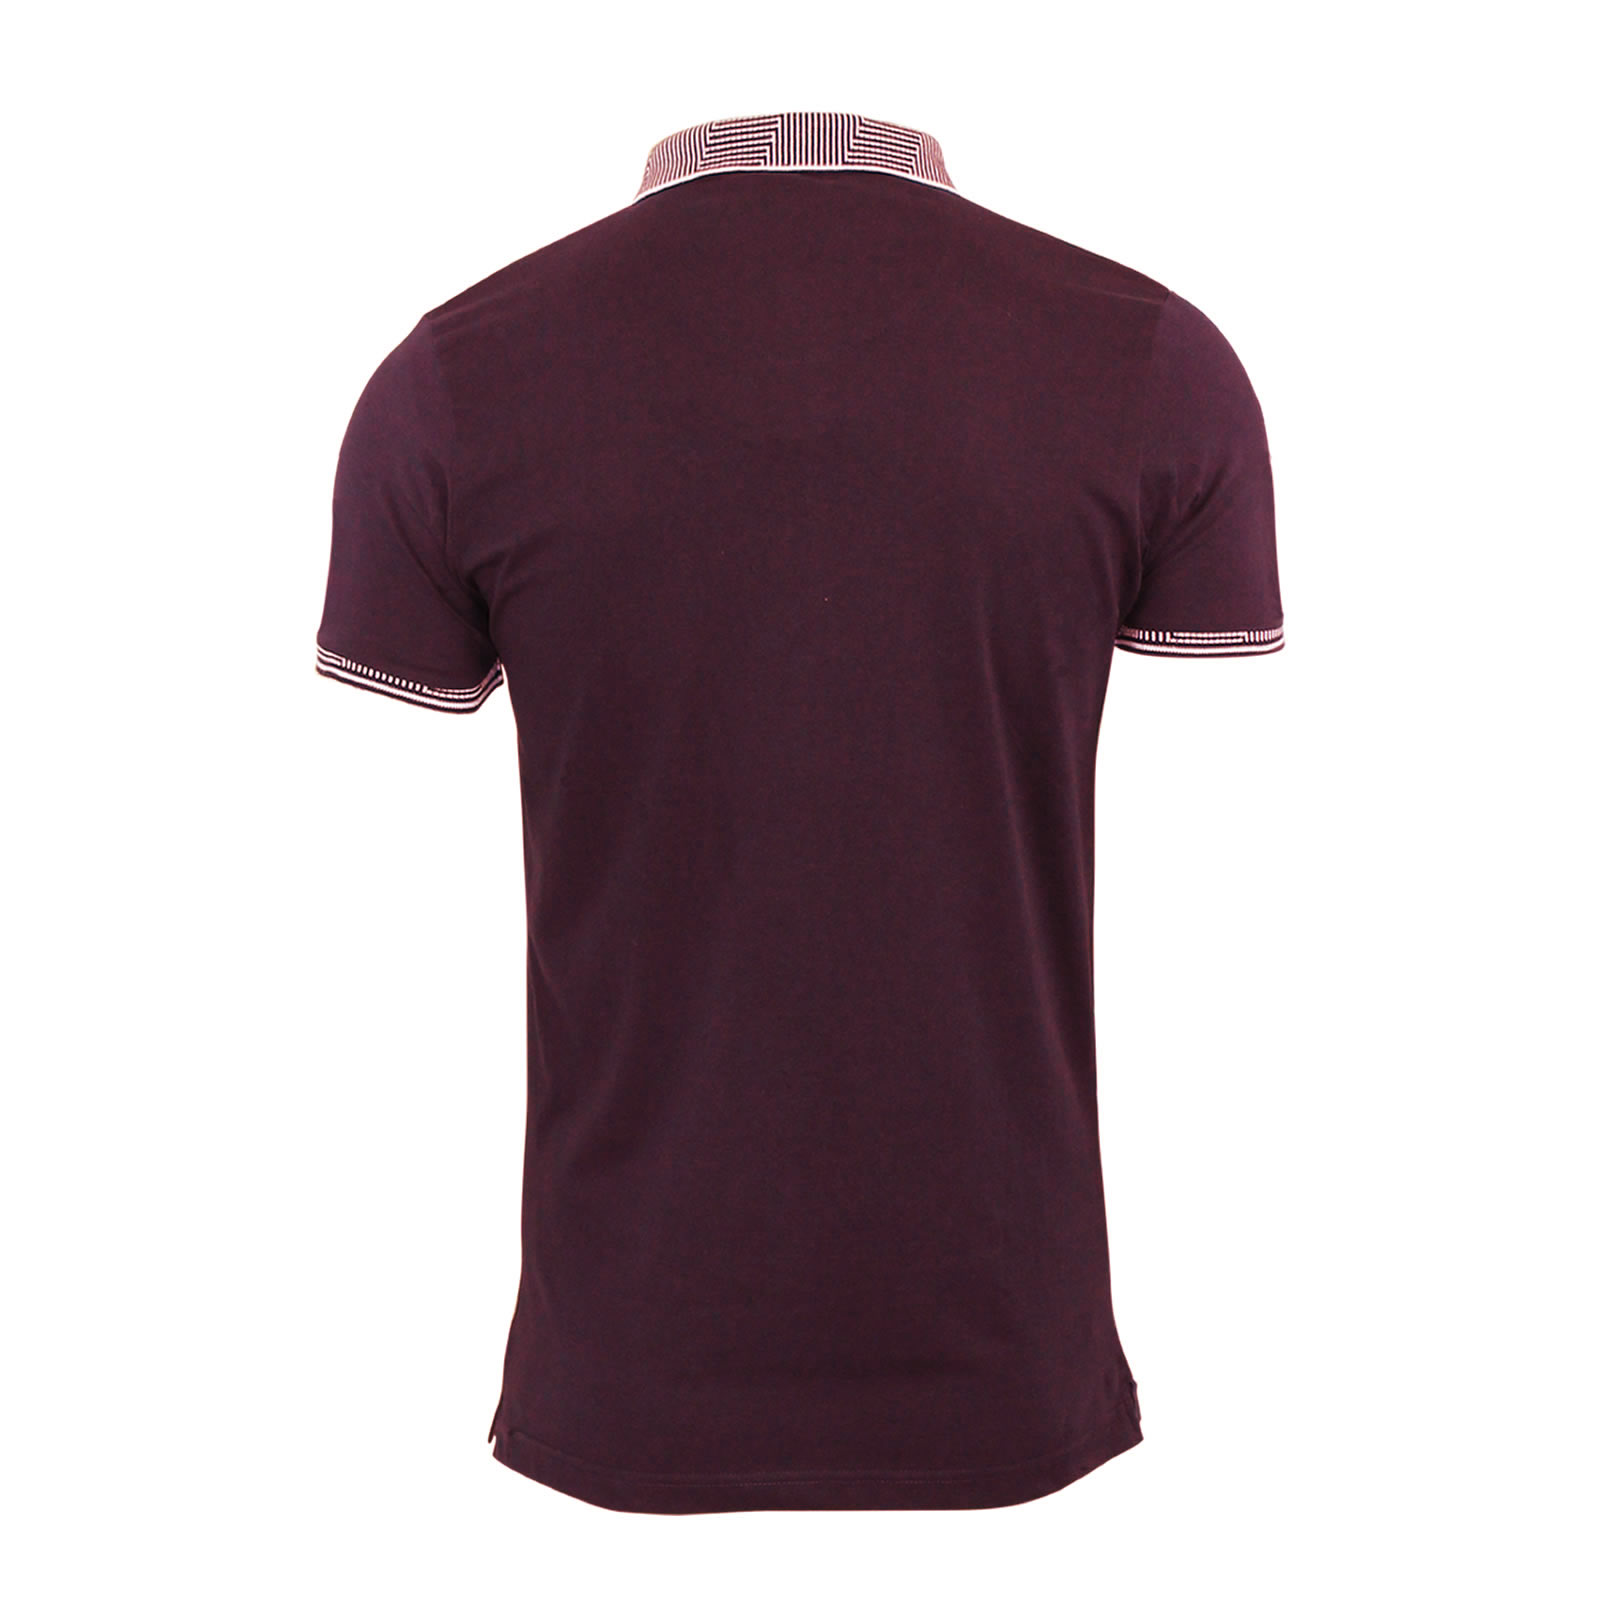 Mens-Polo-T-Shirt-Brave-Soul-Glover-Cotton-Collared-Short-Sleeve-Casual-Top thumbnail 16